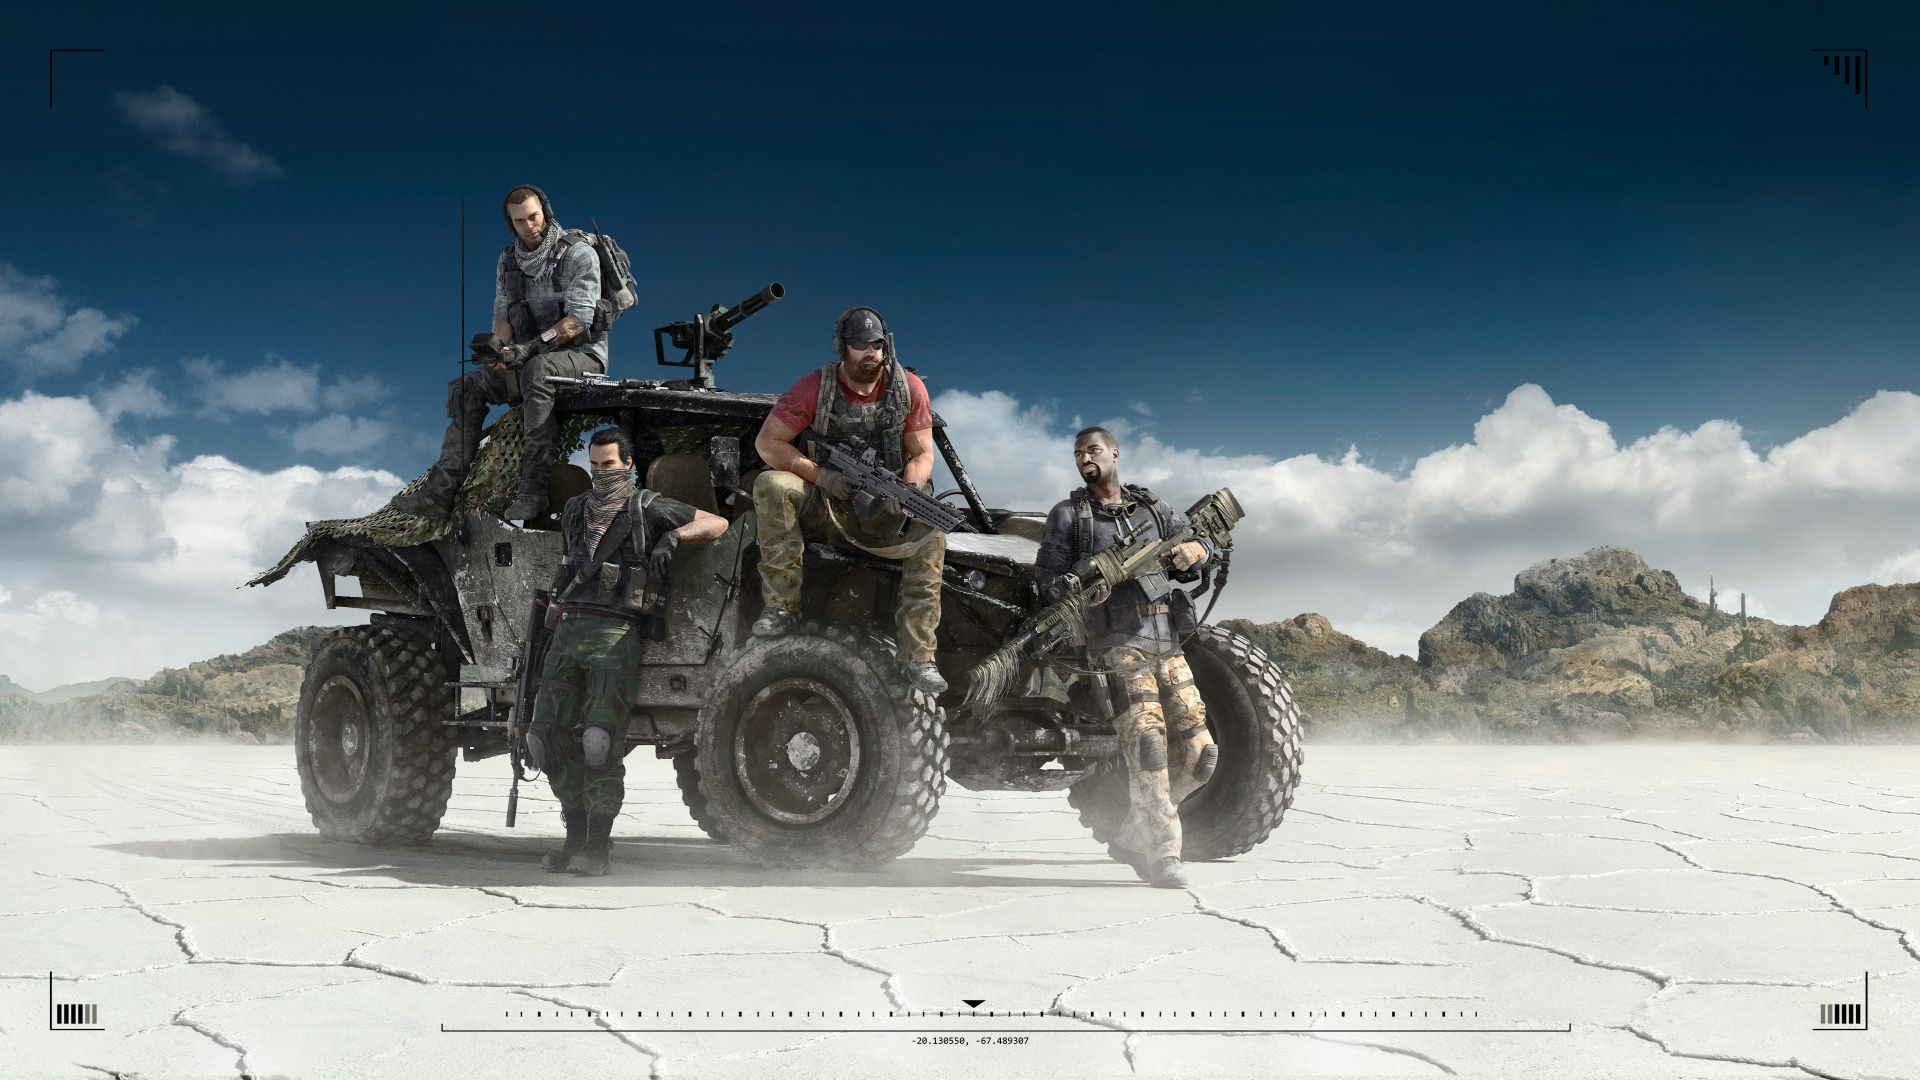 Tom Clancy's Ghost Recon Wildlands, Лучшие игры, игра, шутер, ПК, Xbox 360, PS3, Tom Clancy's Ghost Recon Wildlands, Best games, game, shooter, PC, Xbox 360, PS3